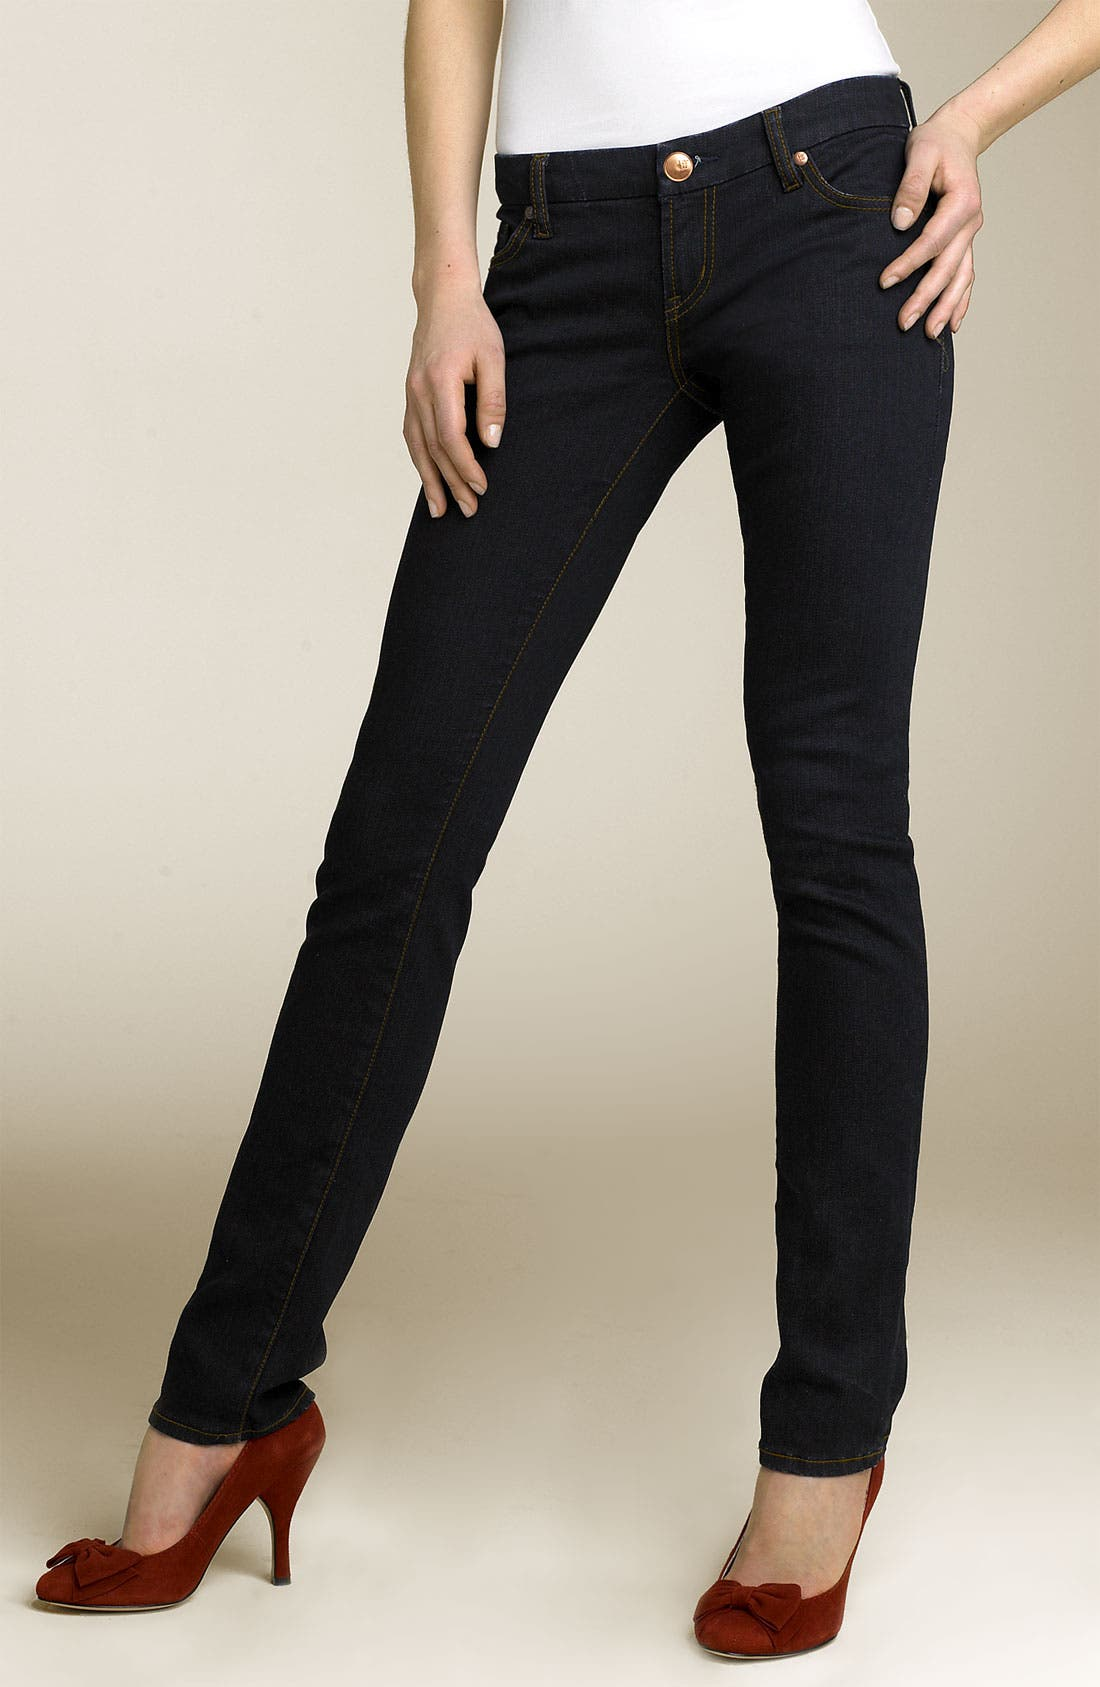 Main Image - !iT Collective 'Rising Starlet' Skinny Stretch Jeans (Juniors)